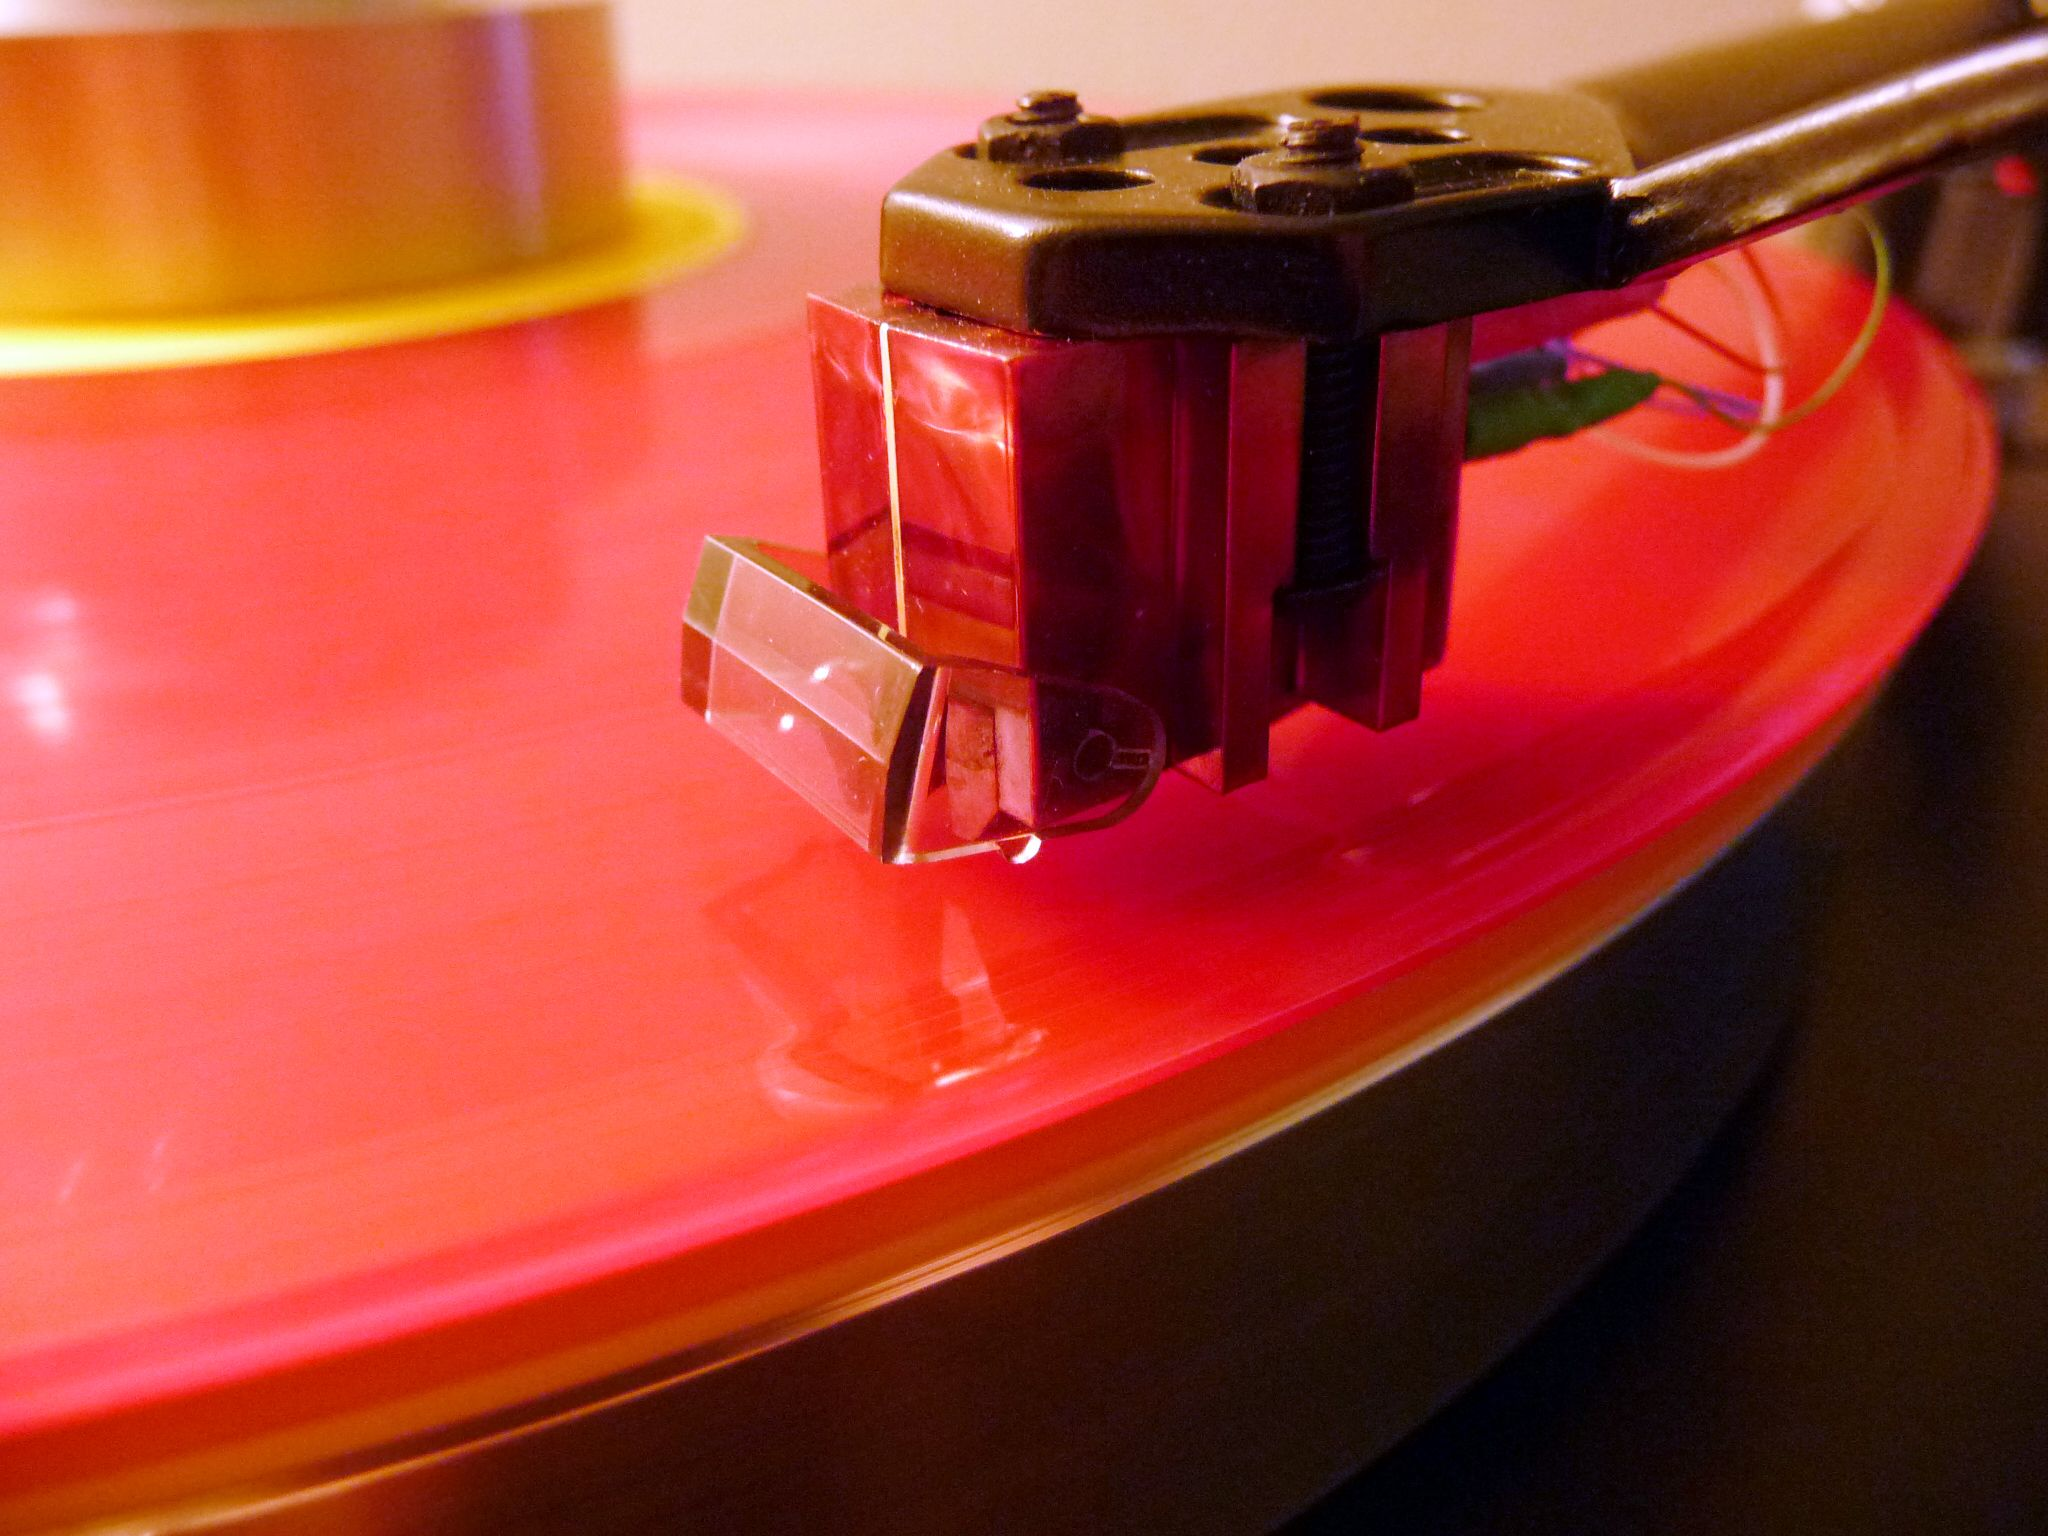 Denon DL-110 is a great entry level moving coil cartridge